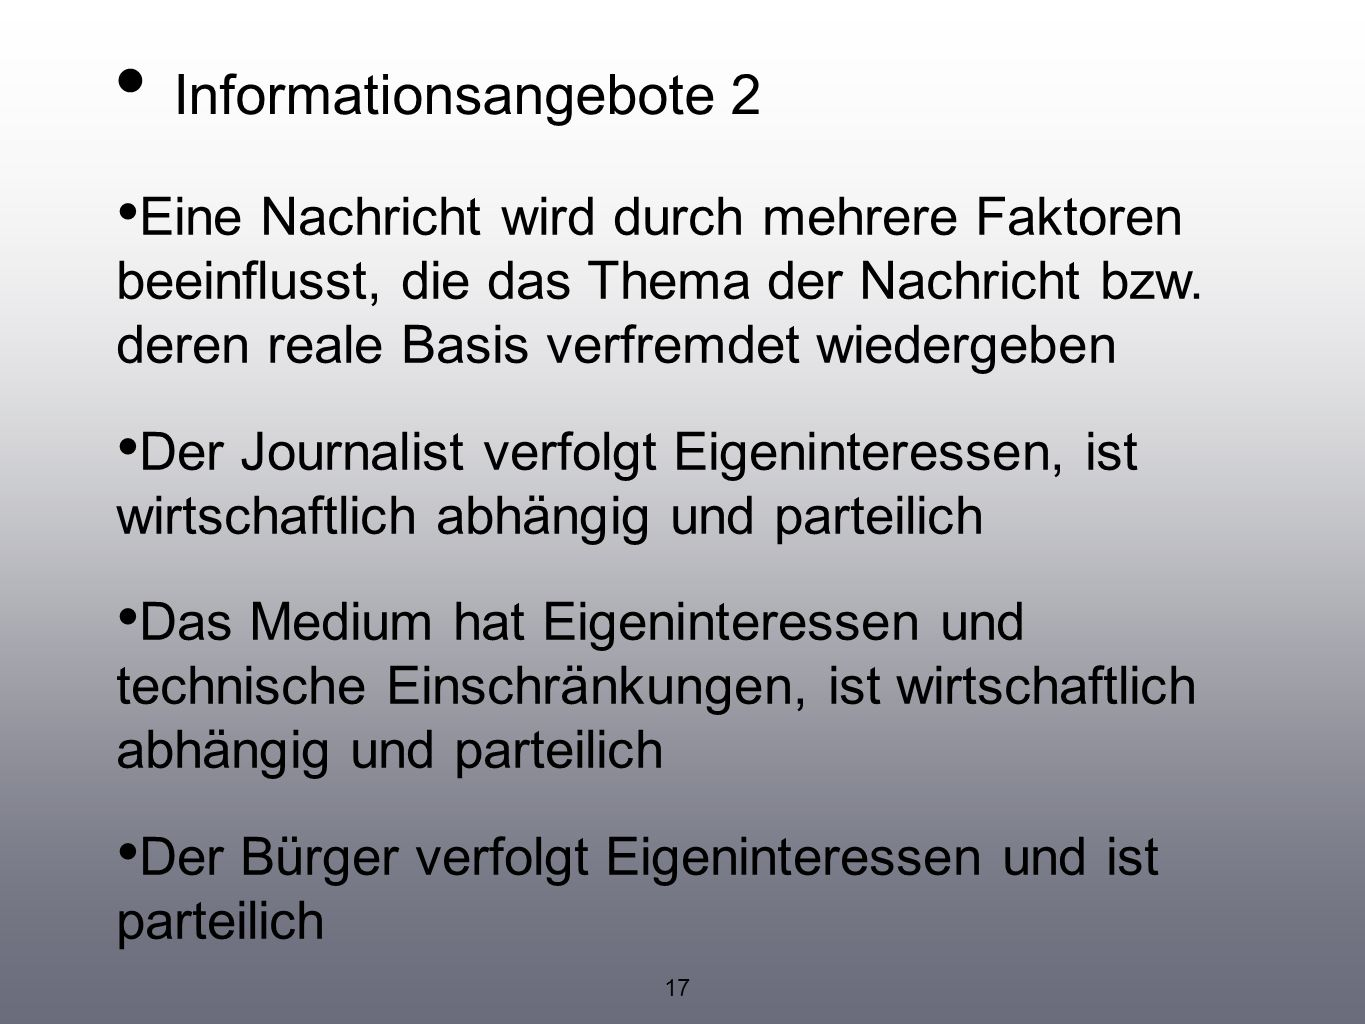 Informationsangebote 2